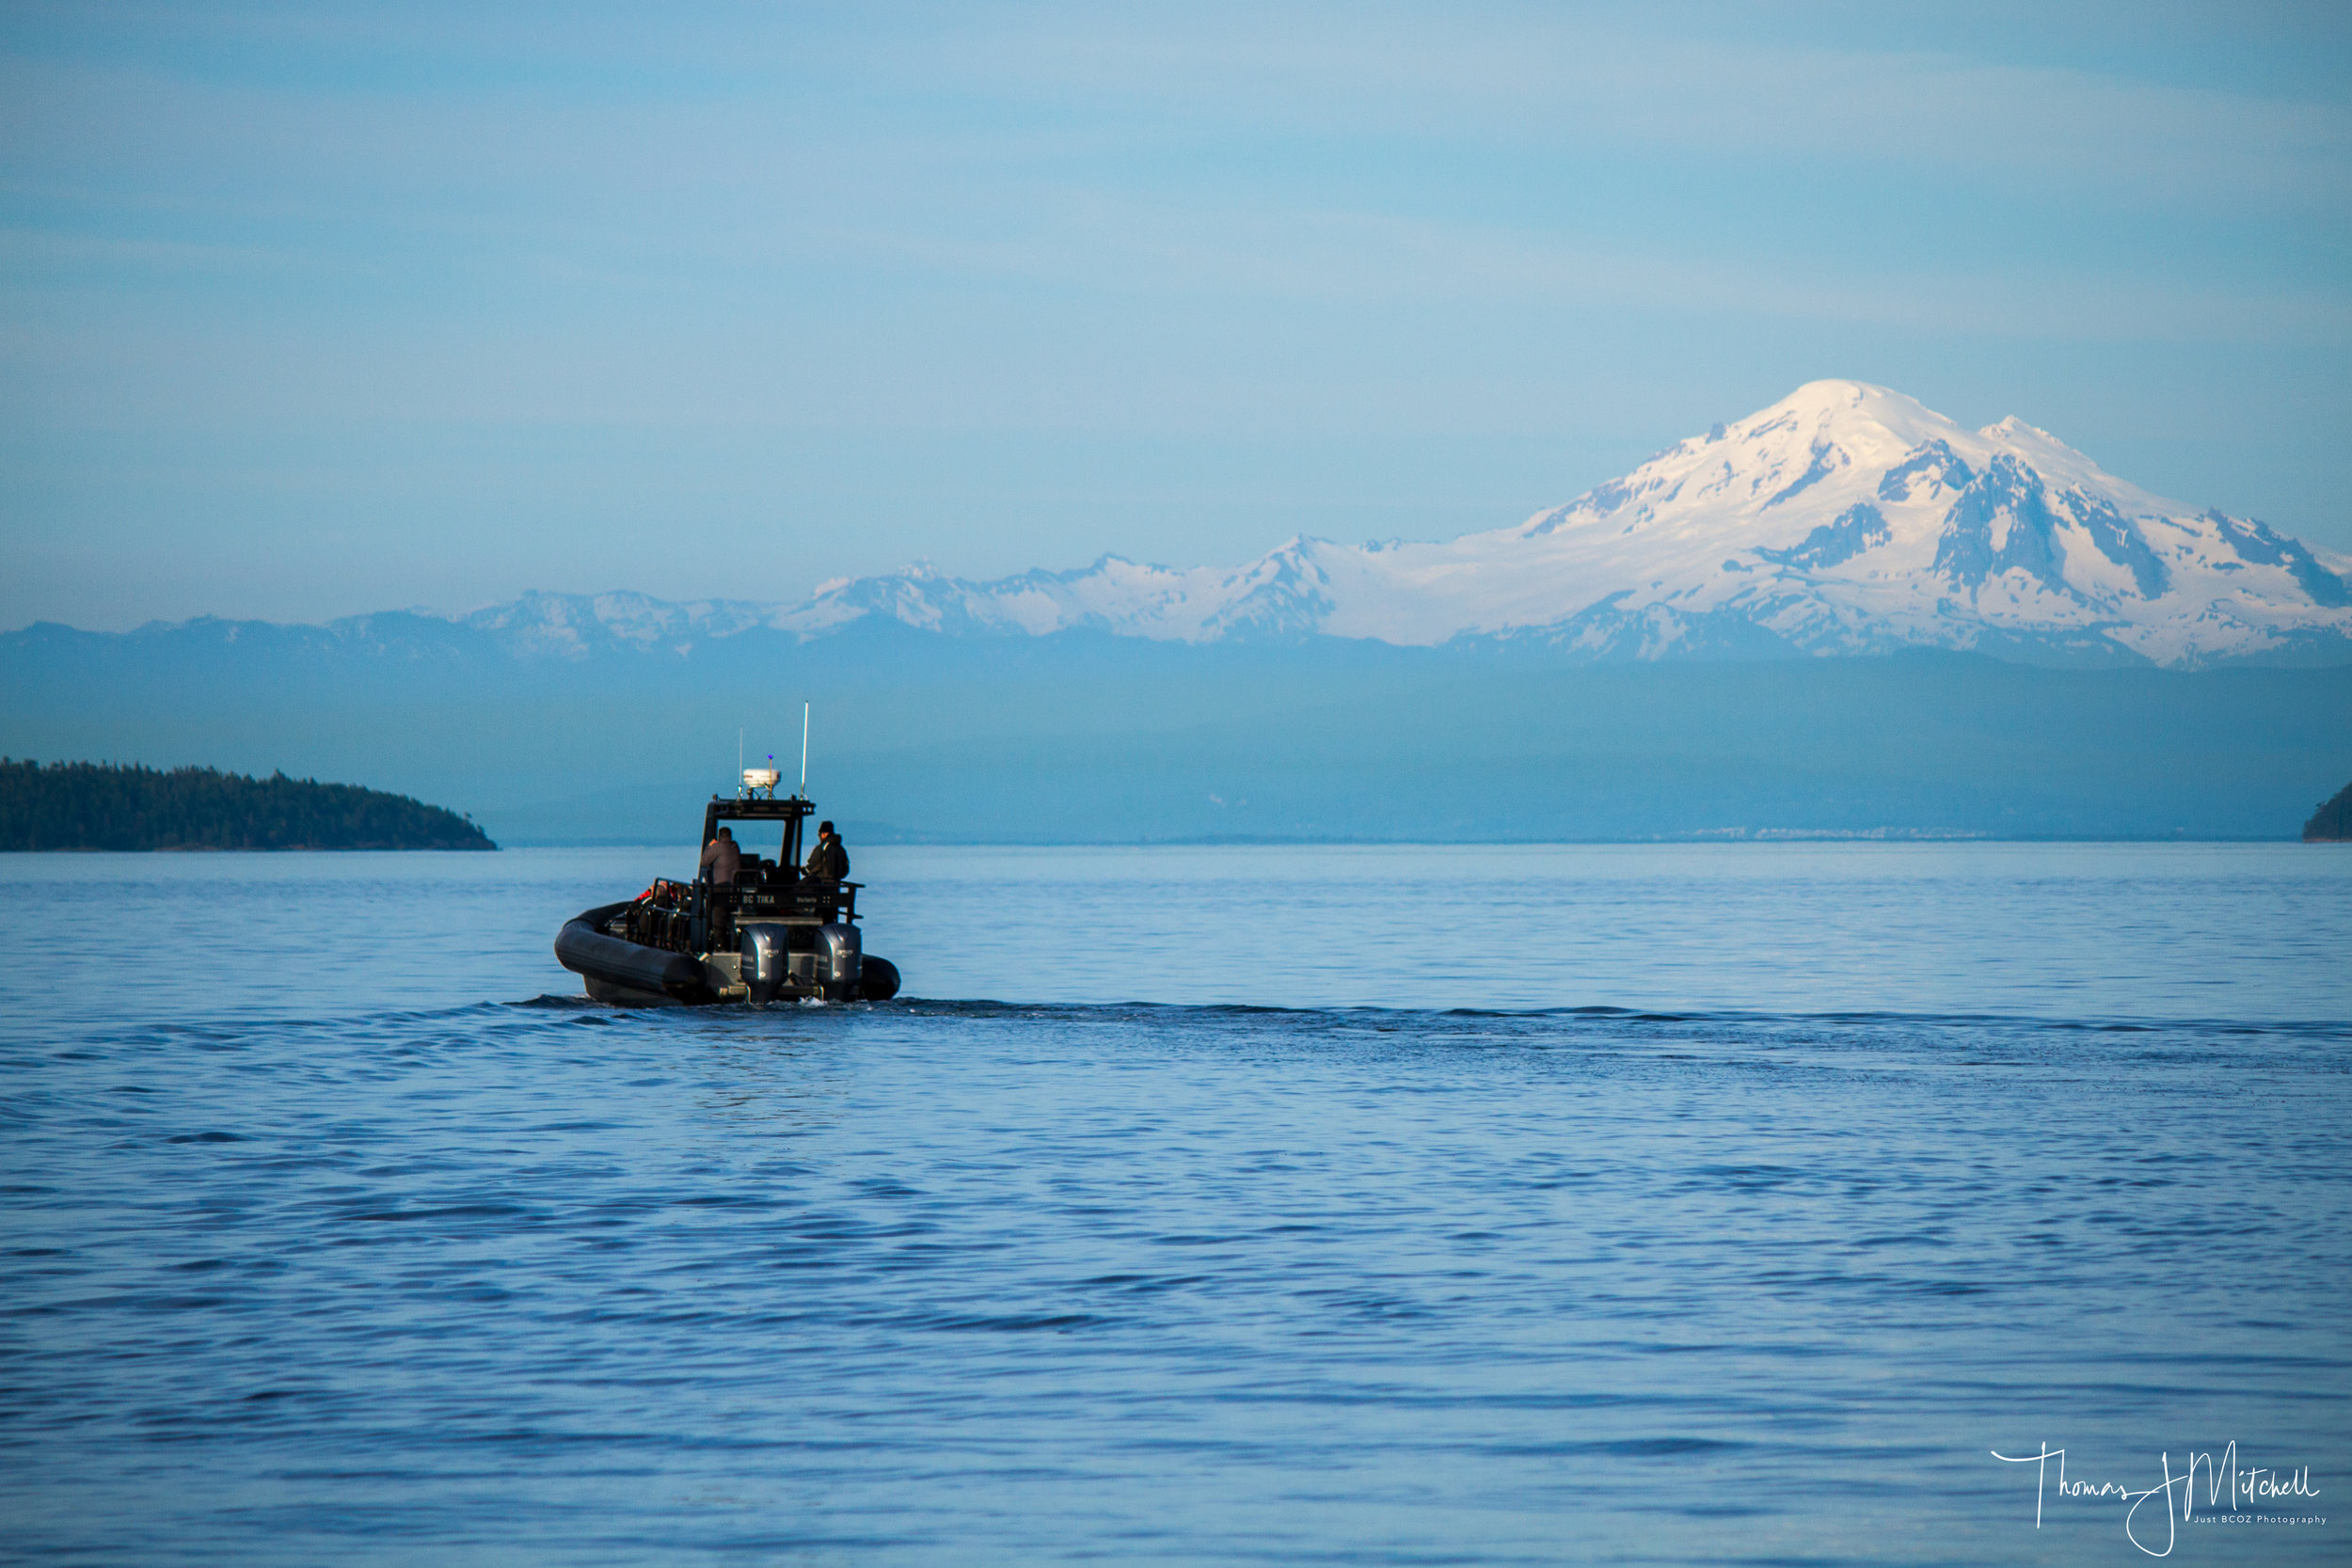 BC TIKA with Capt. Gordon at the helm ~ Mt. Baker in the background